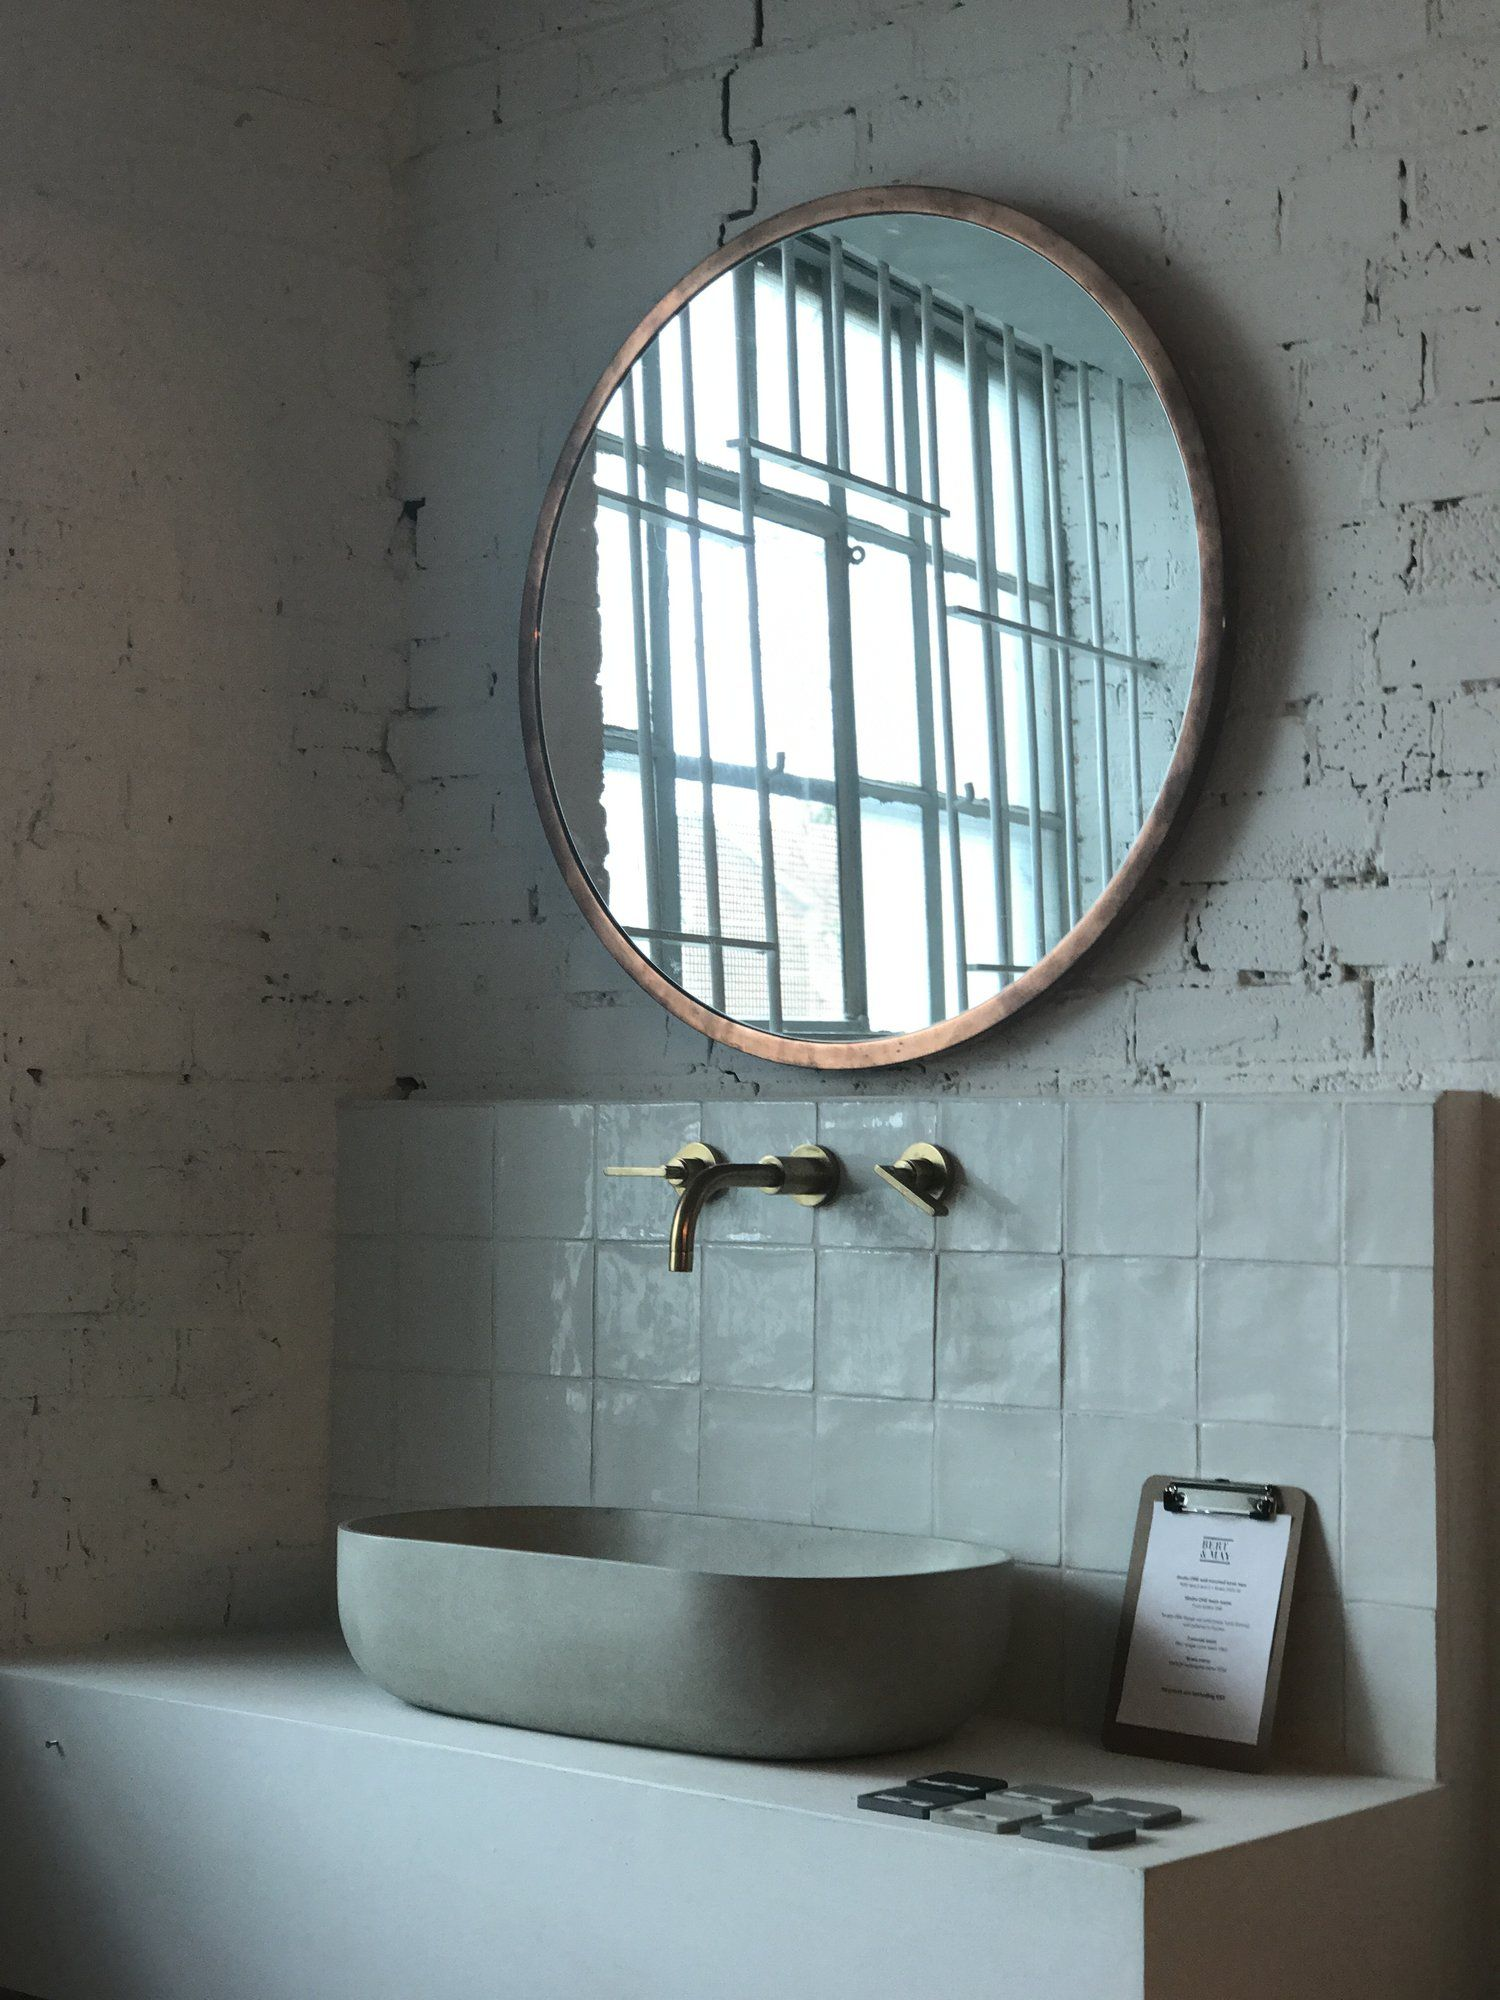 THE BEST RETAIL IN THE WORLD: BERT & MAY | Retail, Vanities and Bath